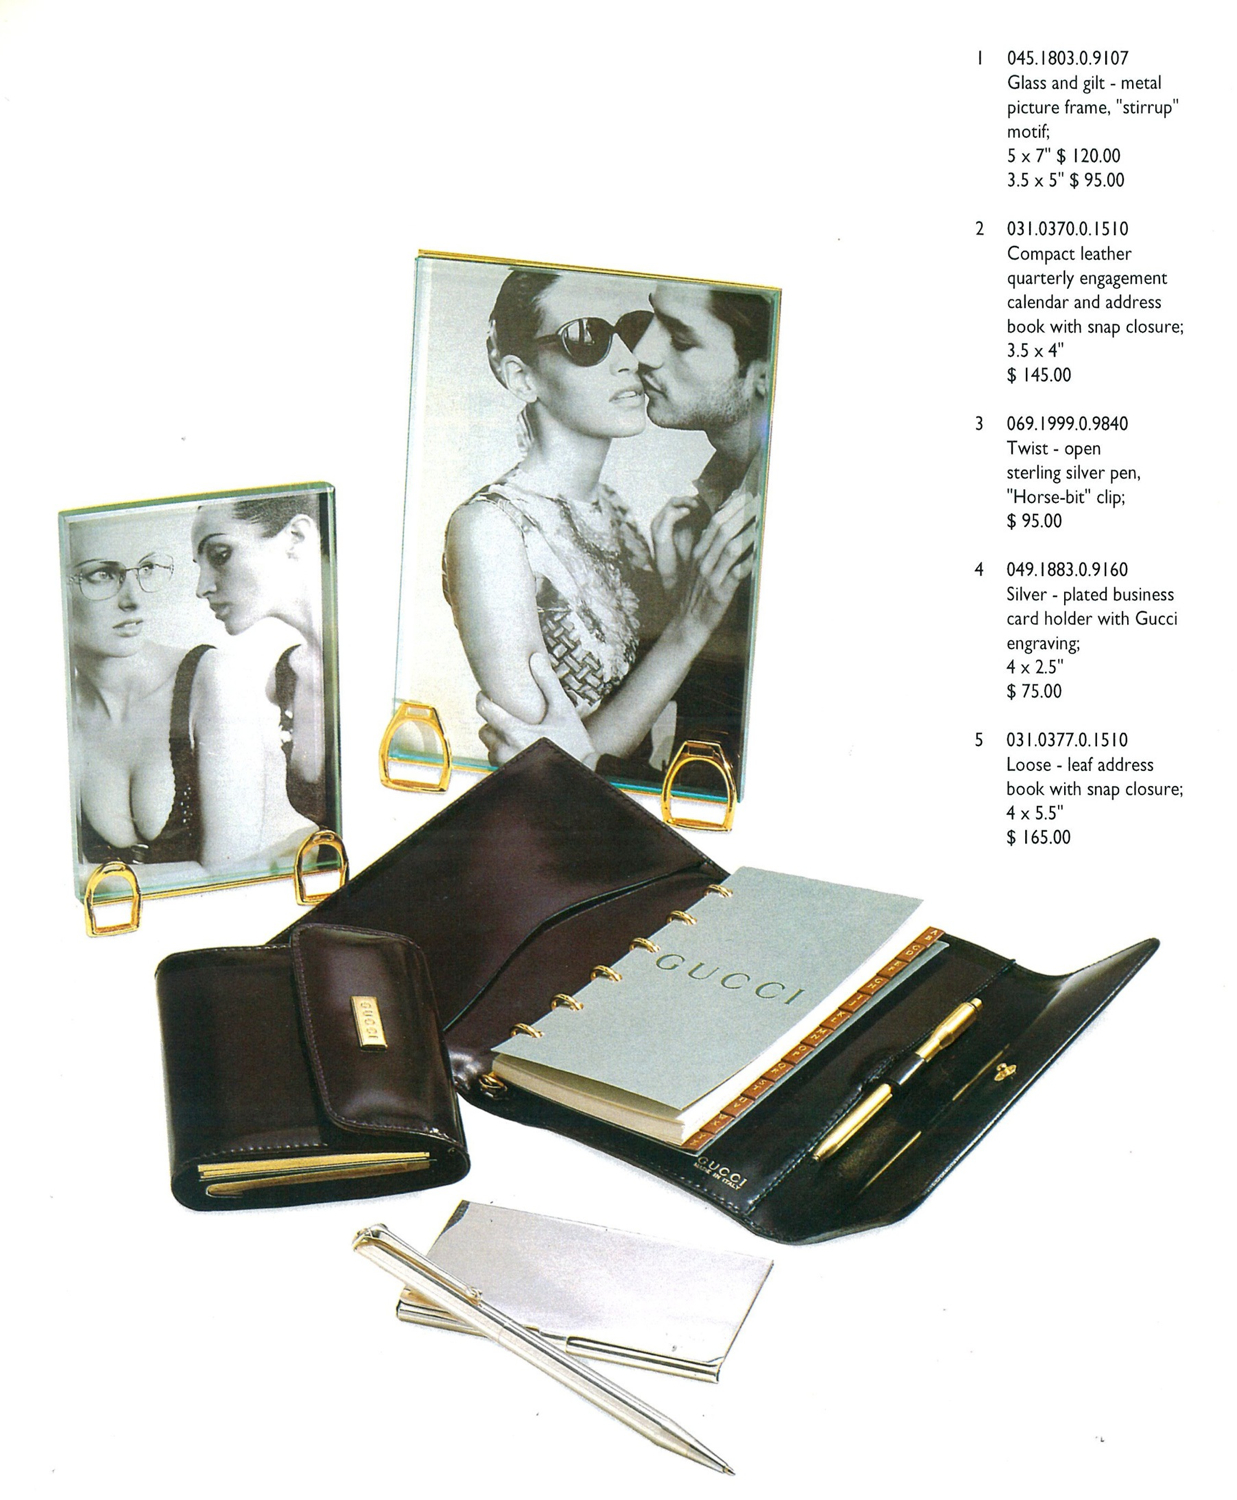 Gucci Desk Accesories 1995 Gilt Brass Stirrup Photo Picture Frames Sterling Silver Pen Buisiness Card Holder